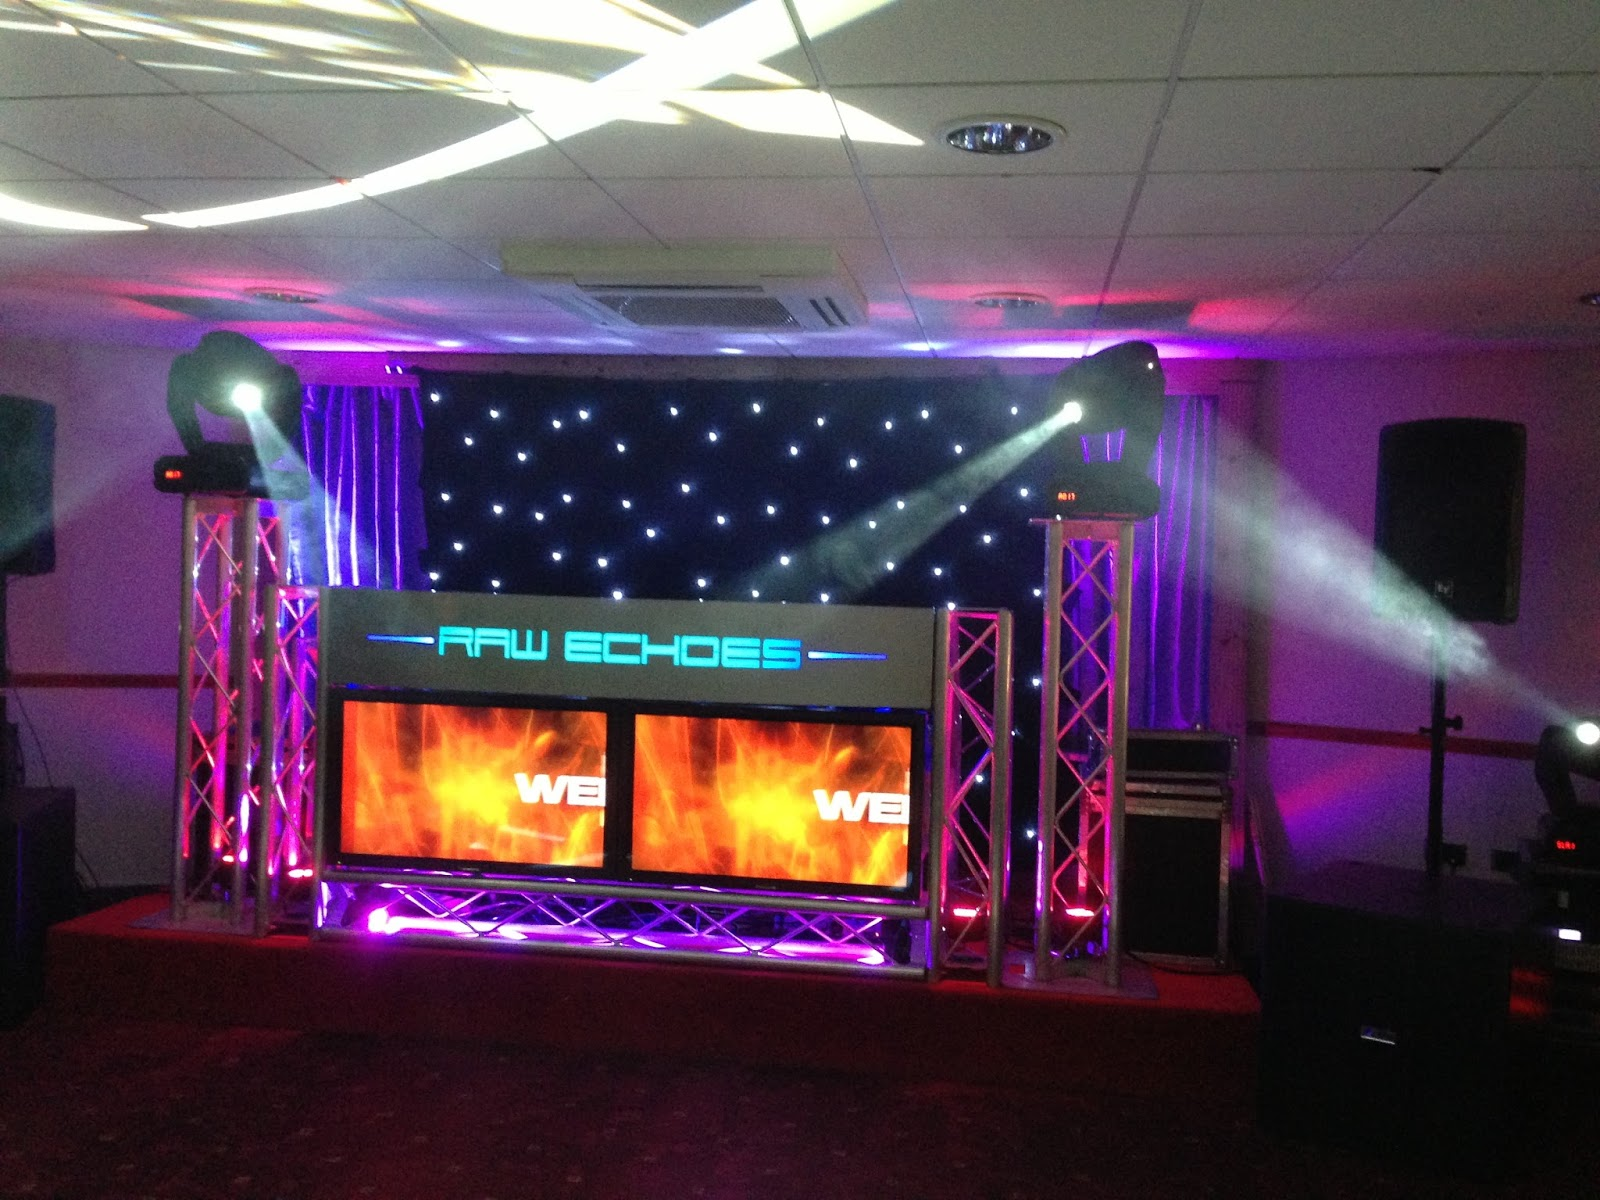 Popular Asian Wedding Djs And Music In London Slough